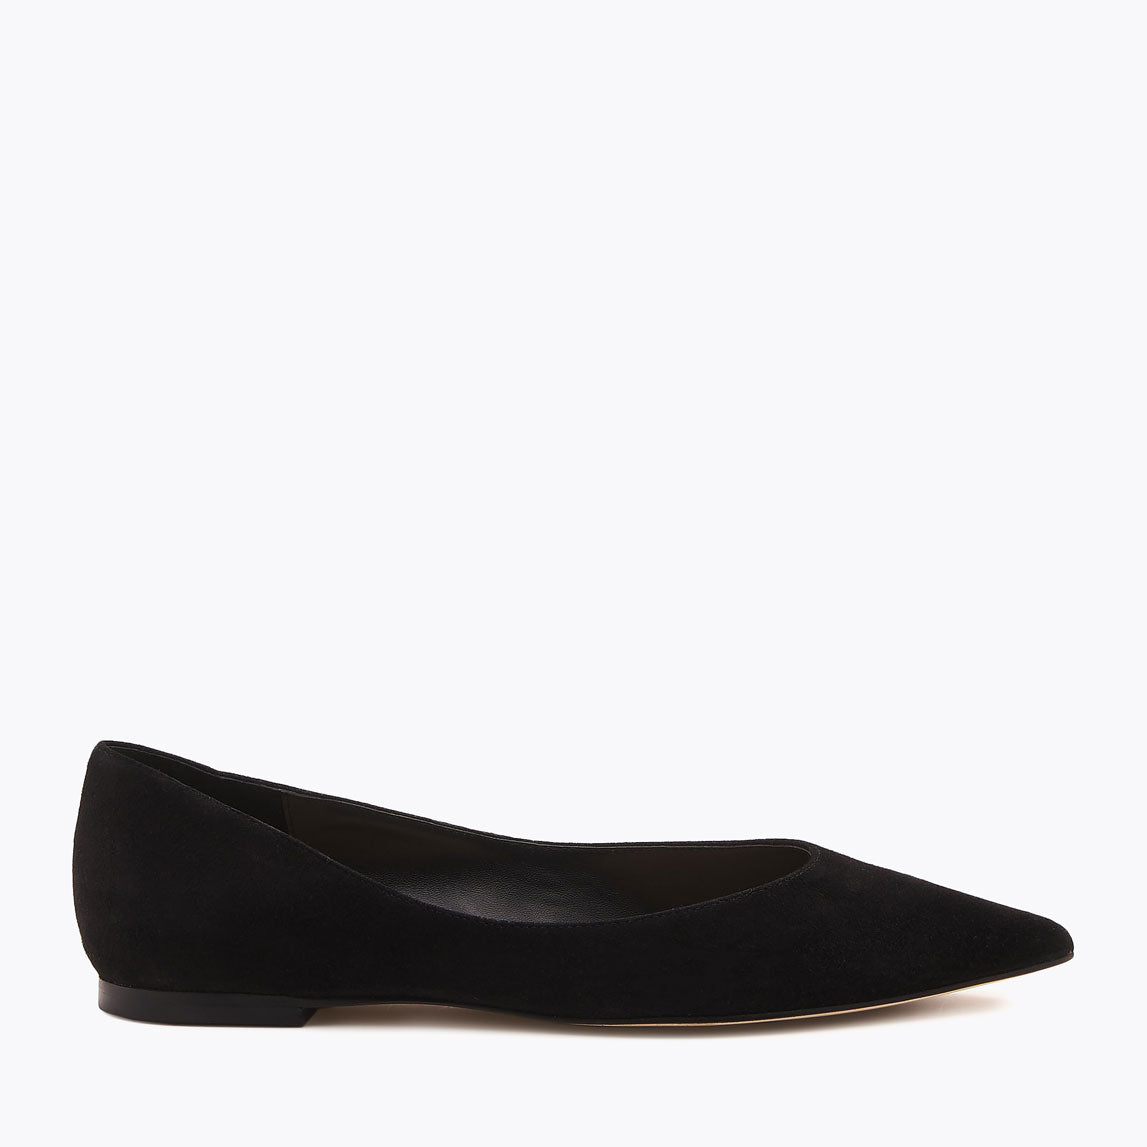 annika flat black side